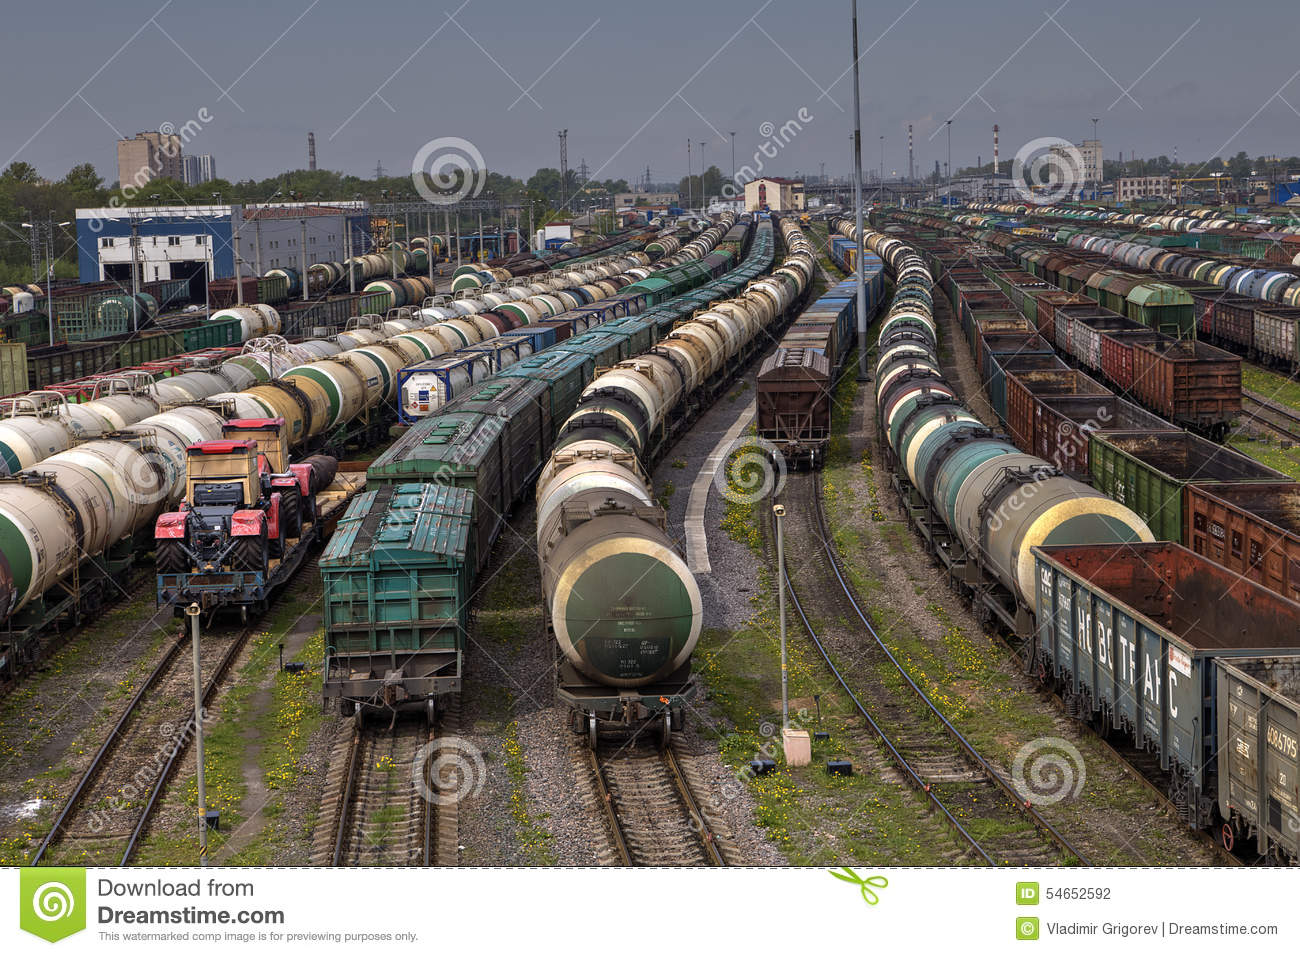 Trains of freight wagons in marshalling yard, Russia.